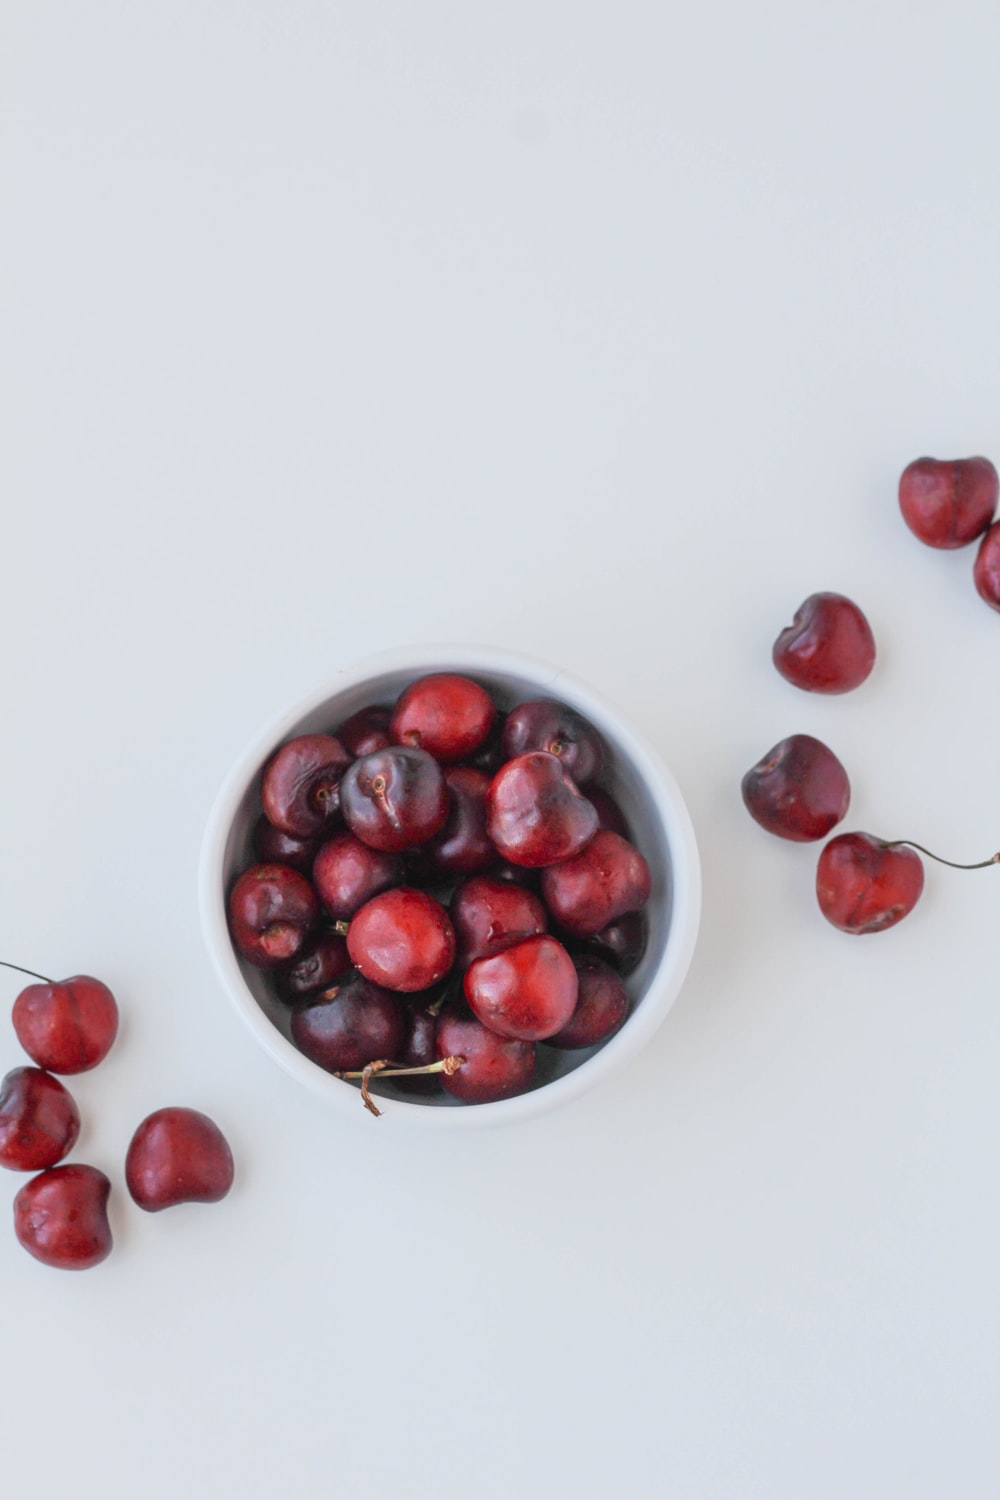 red round fruits on white surface